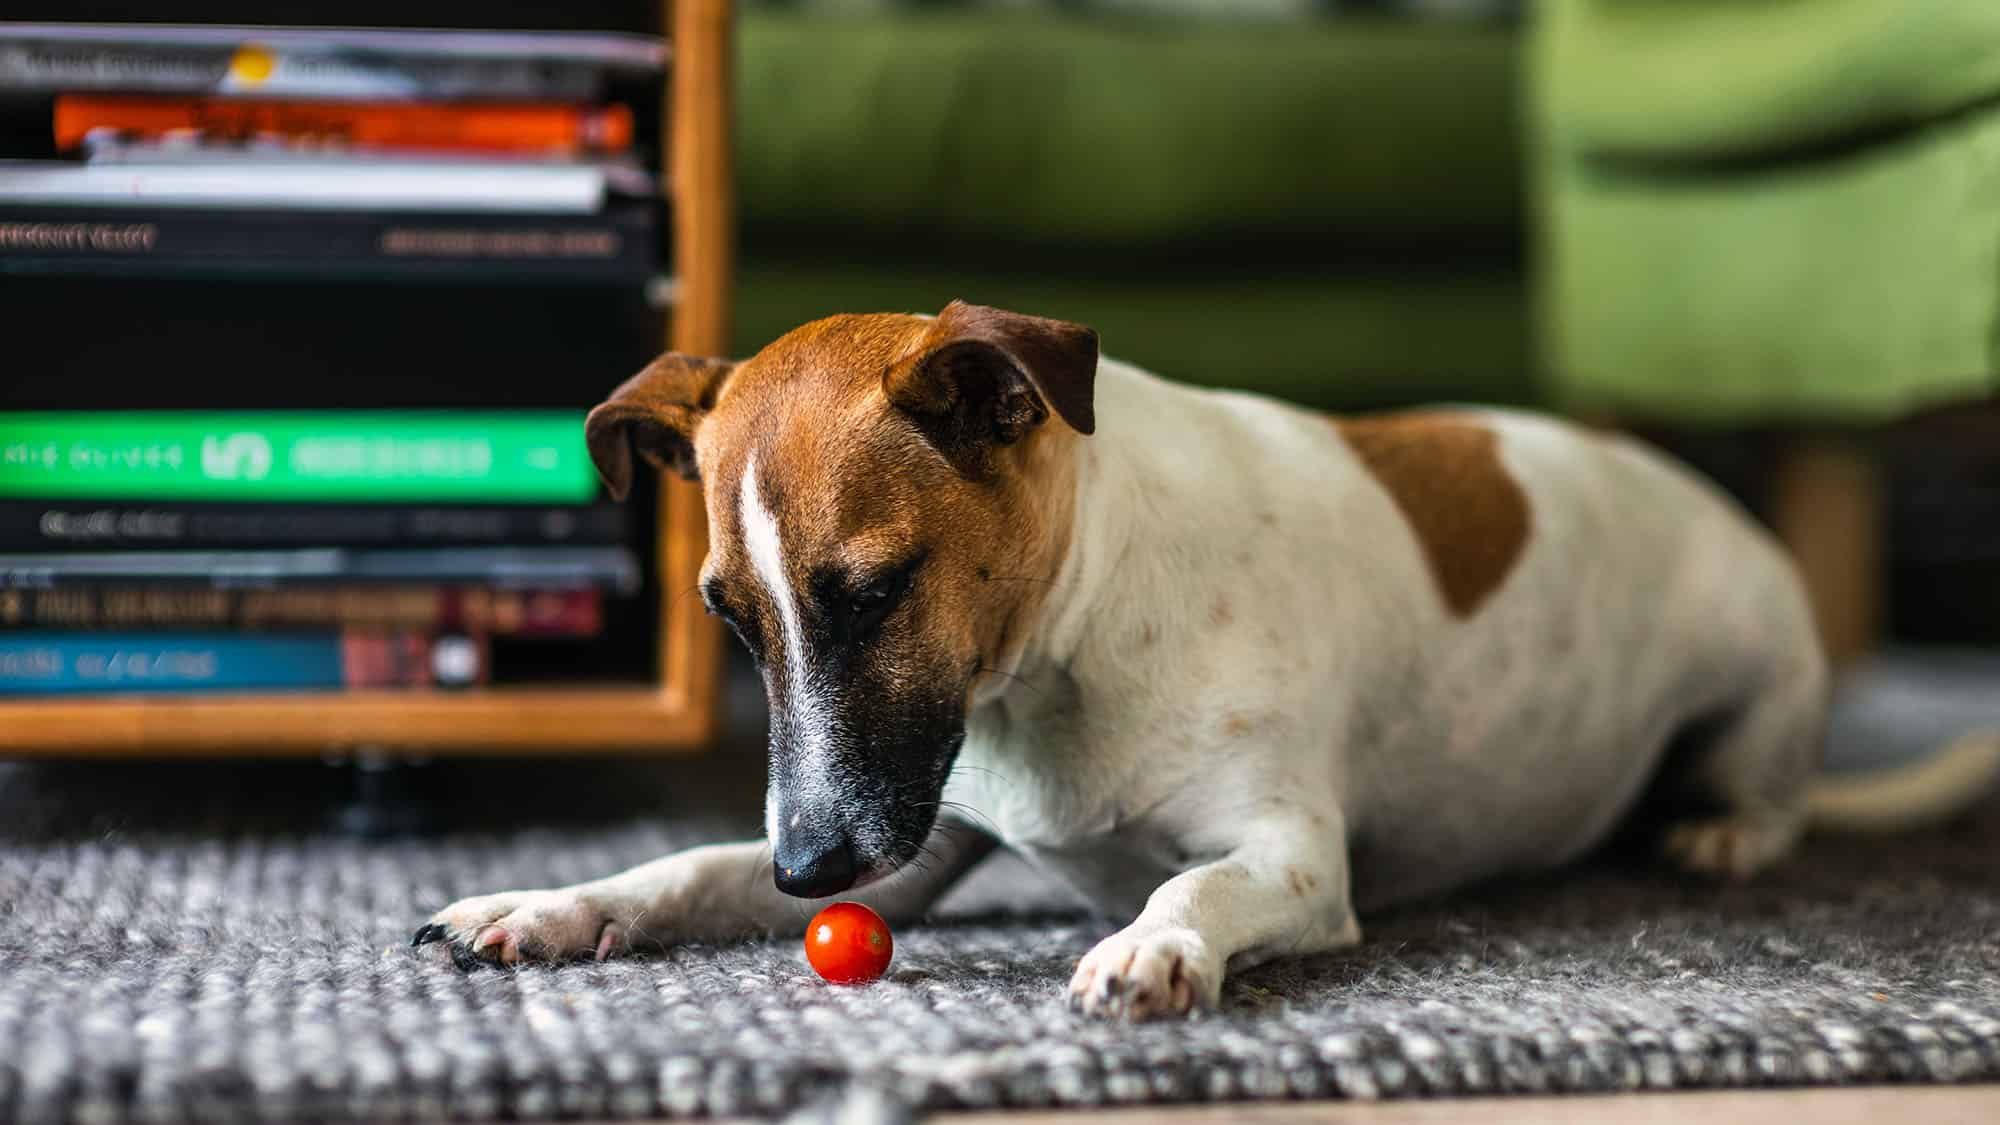 How A Dog Can Help You Through Home Isolation - 1